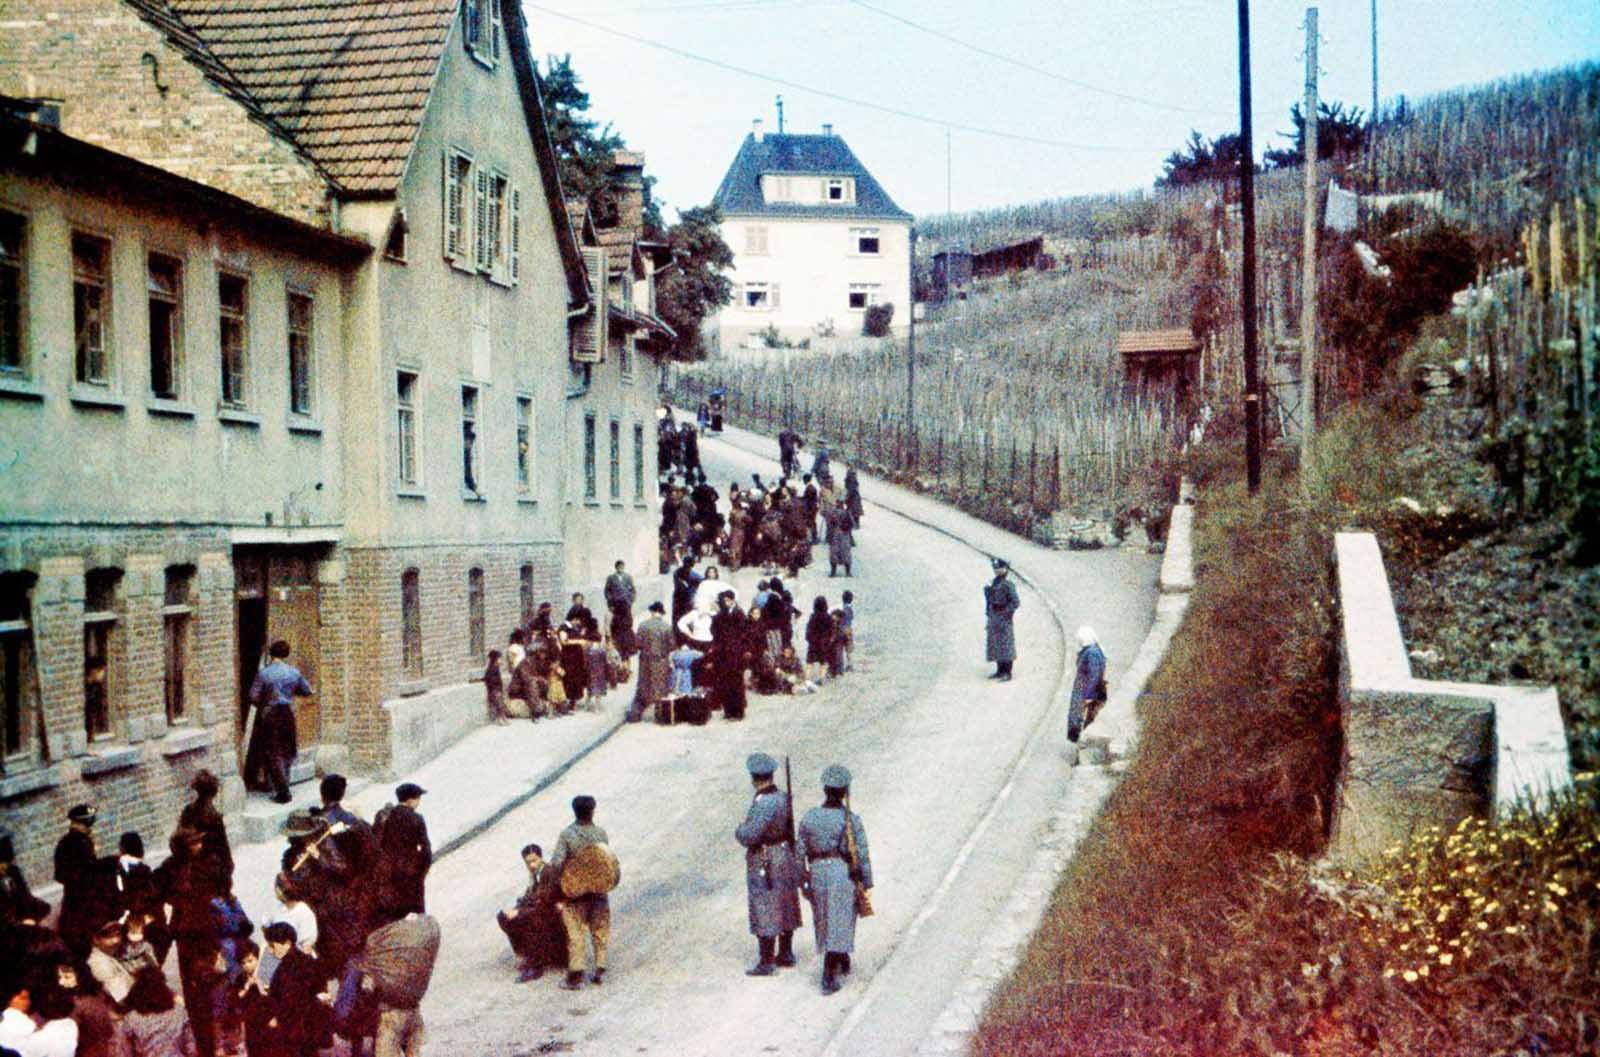 Sinti are rounded up by police in Asperg, Germany. May 22, 1940.